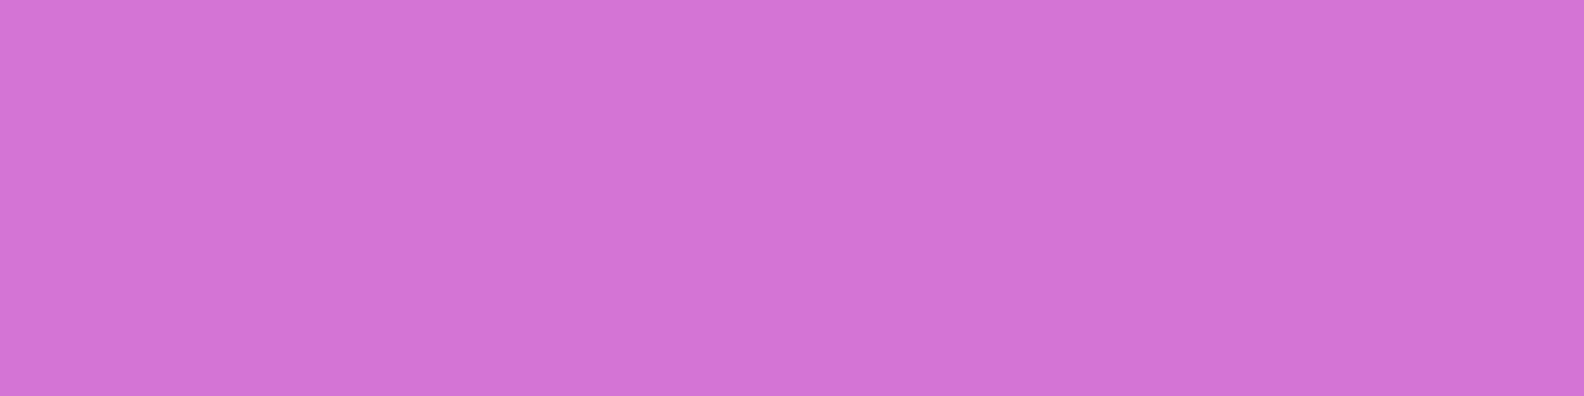 1584x396 Deep Mauve Solid Color Background